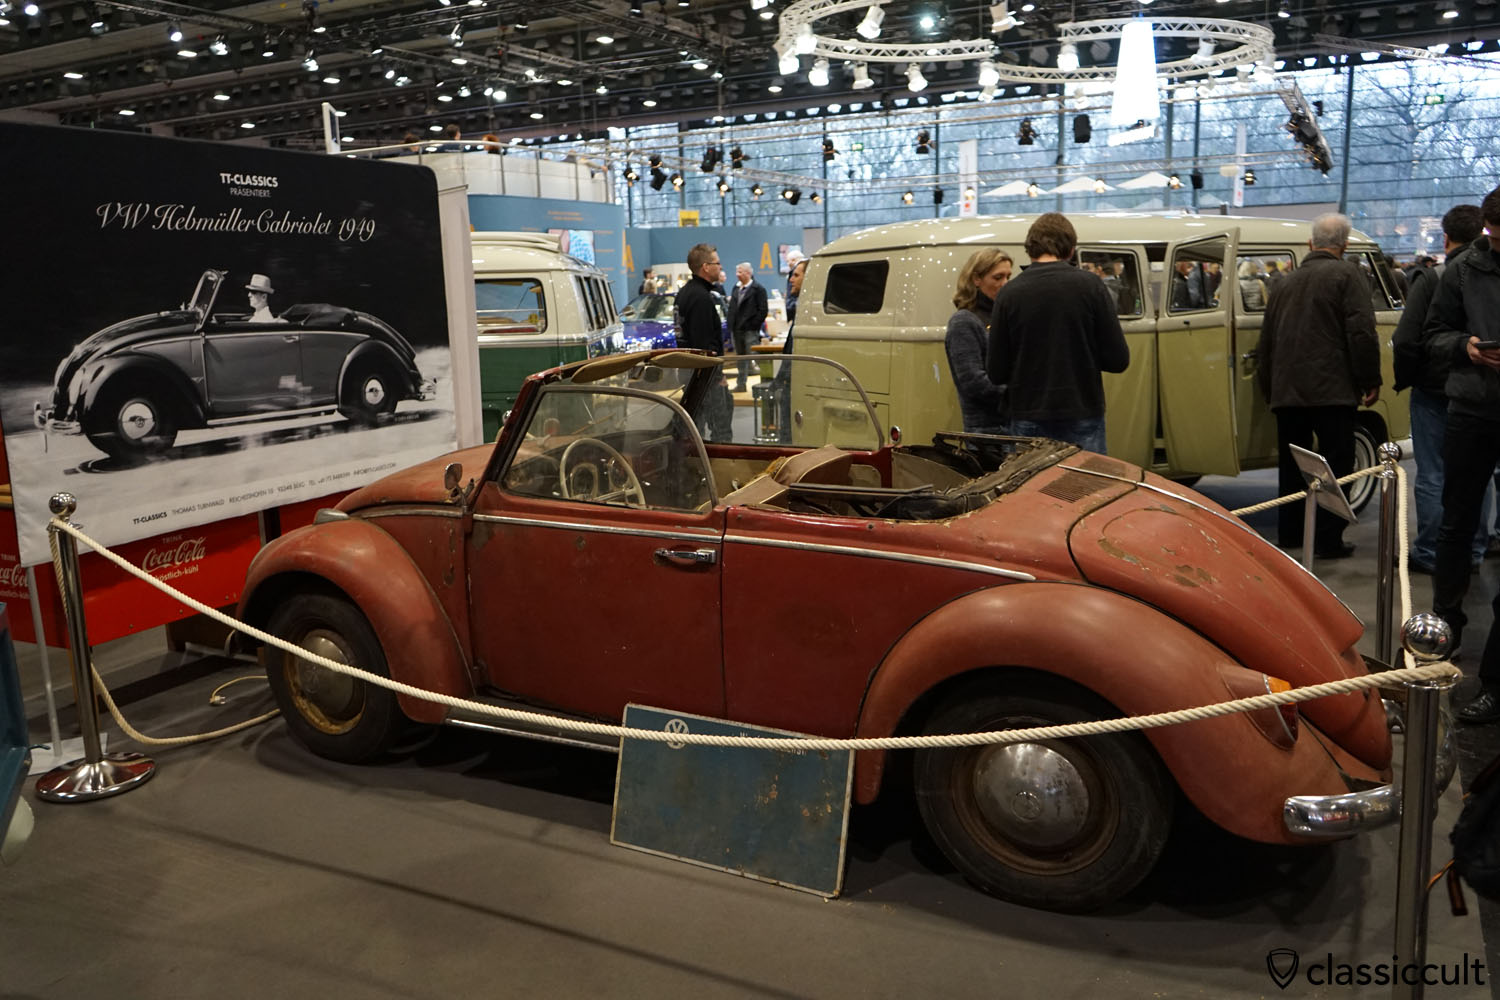 1949 VW Hebmüller, unrestored and rusty